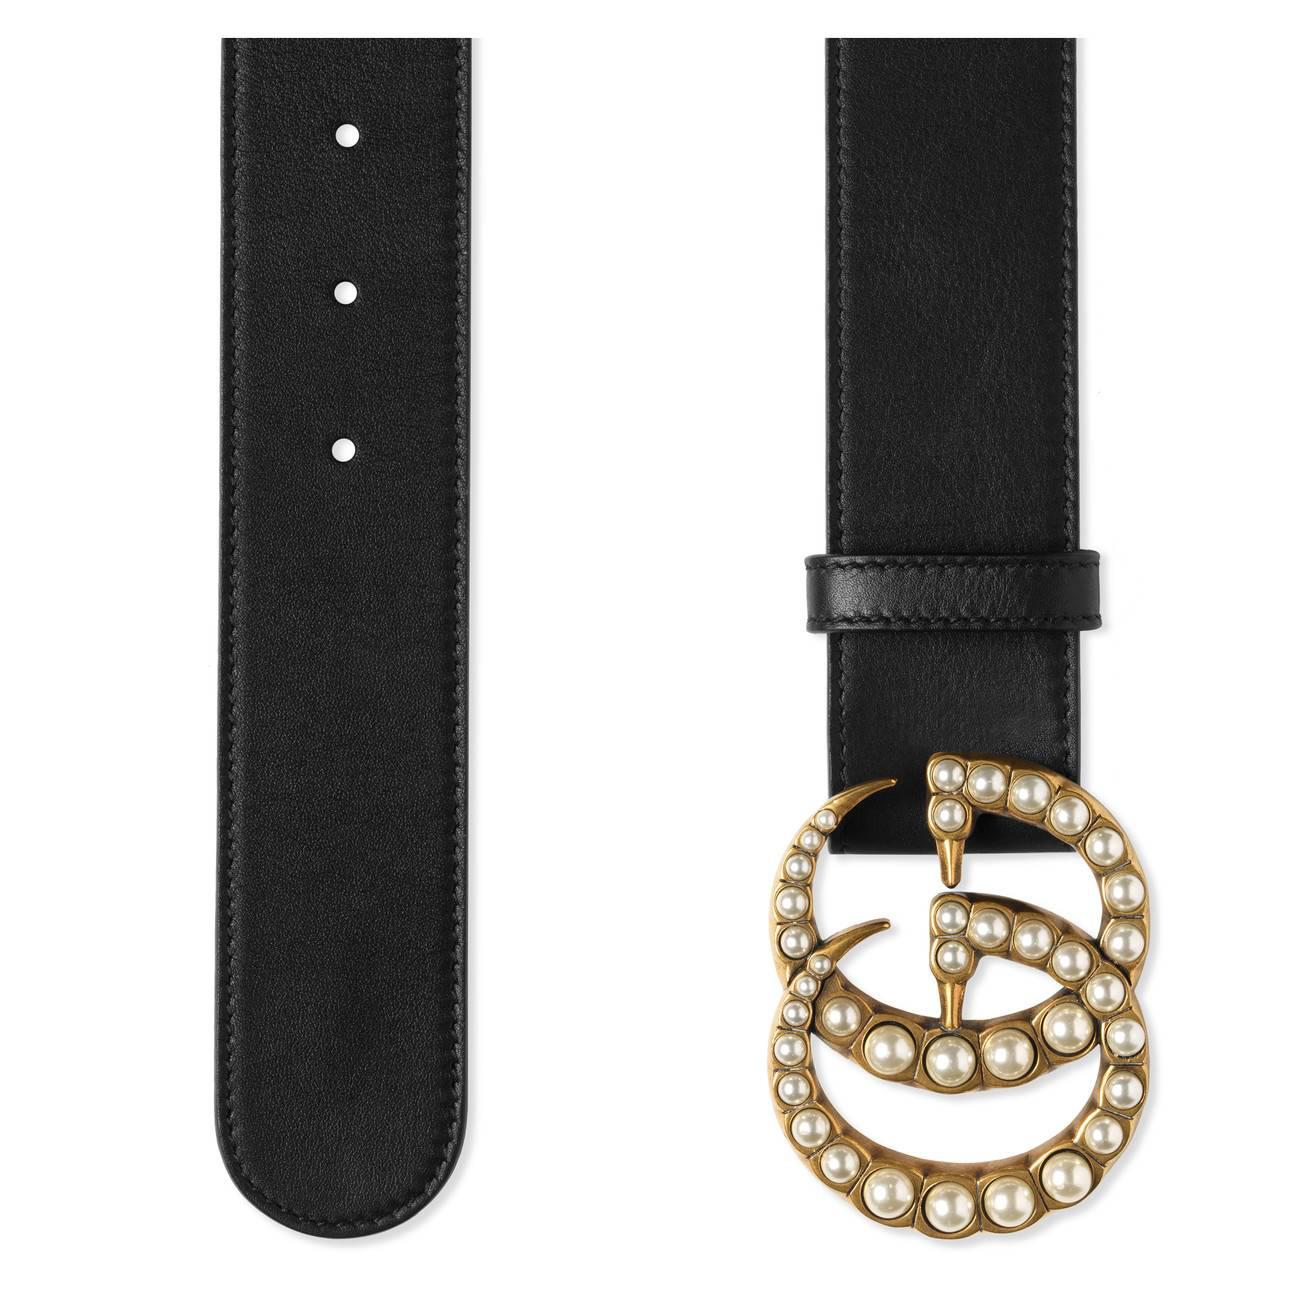 f70b52f3564 Gucci - Black Leather Belt With Pearl Double G - Lyst. View fullscreen